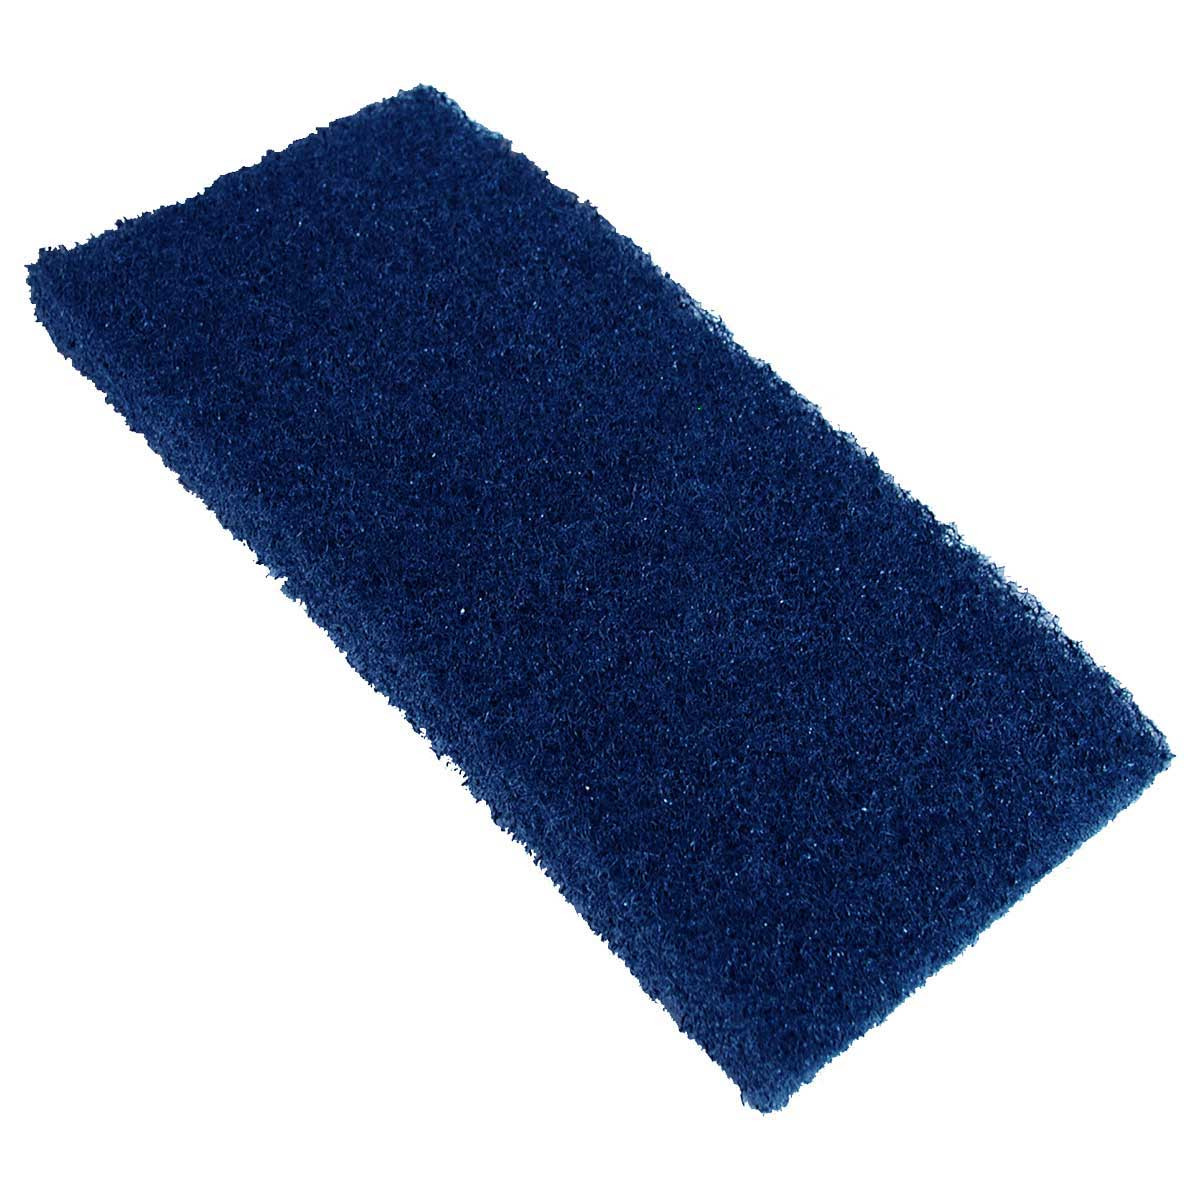 Blue Medium Abrasive Srub pads